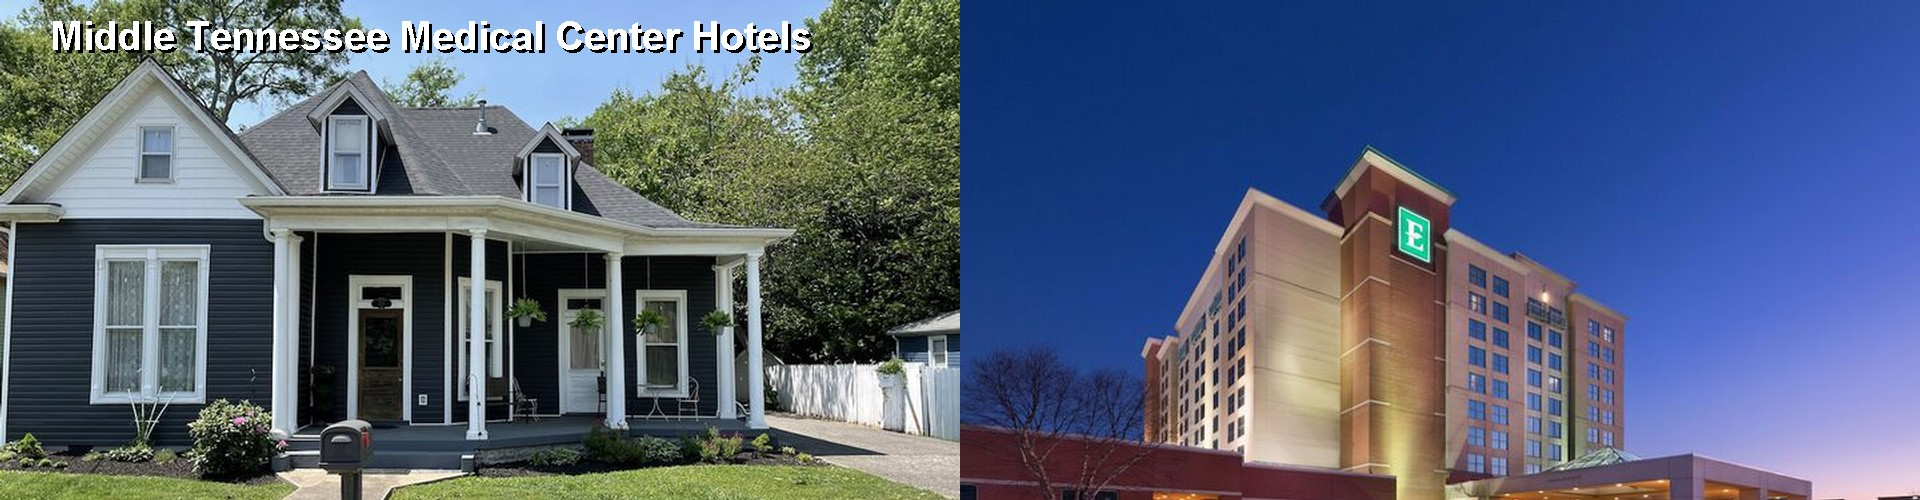 5 Best Hotels near Middle Tennessee Medical Center